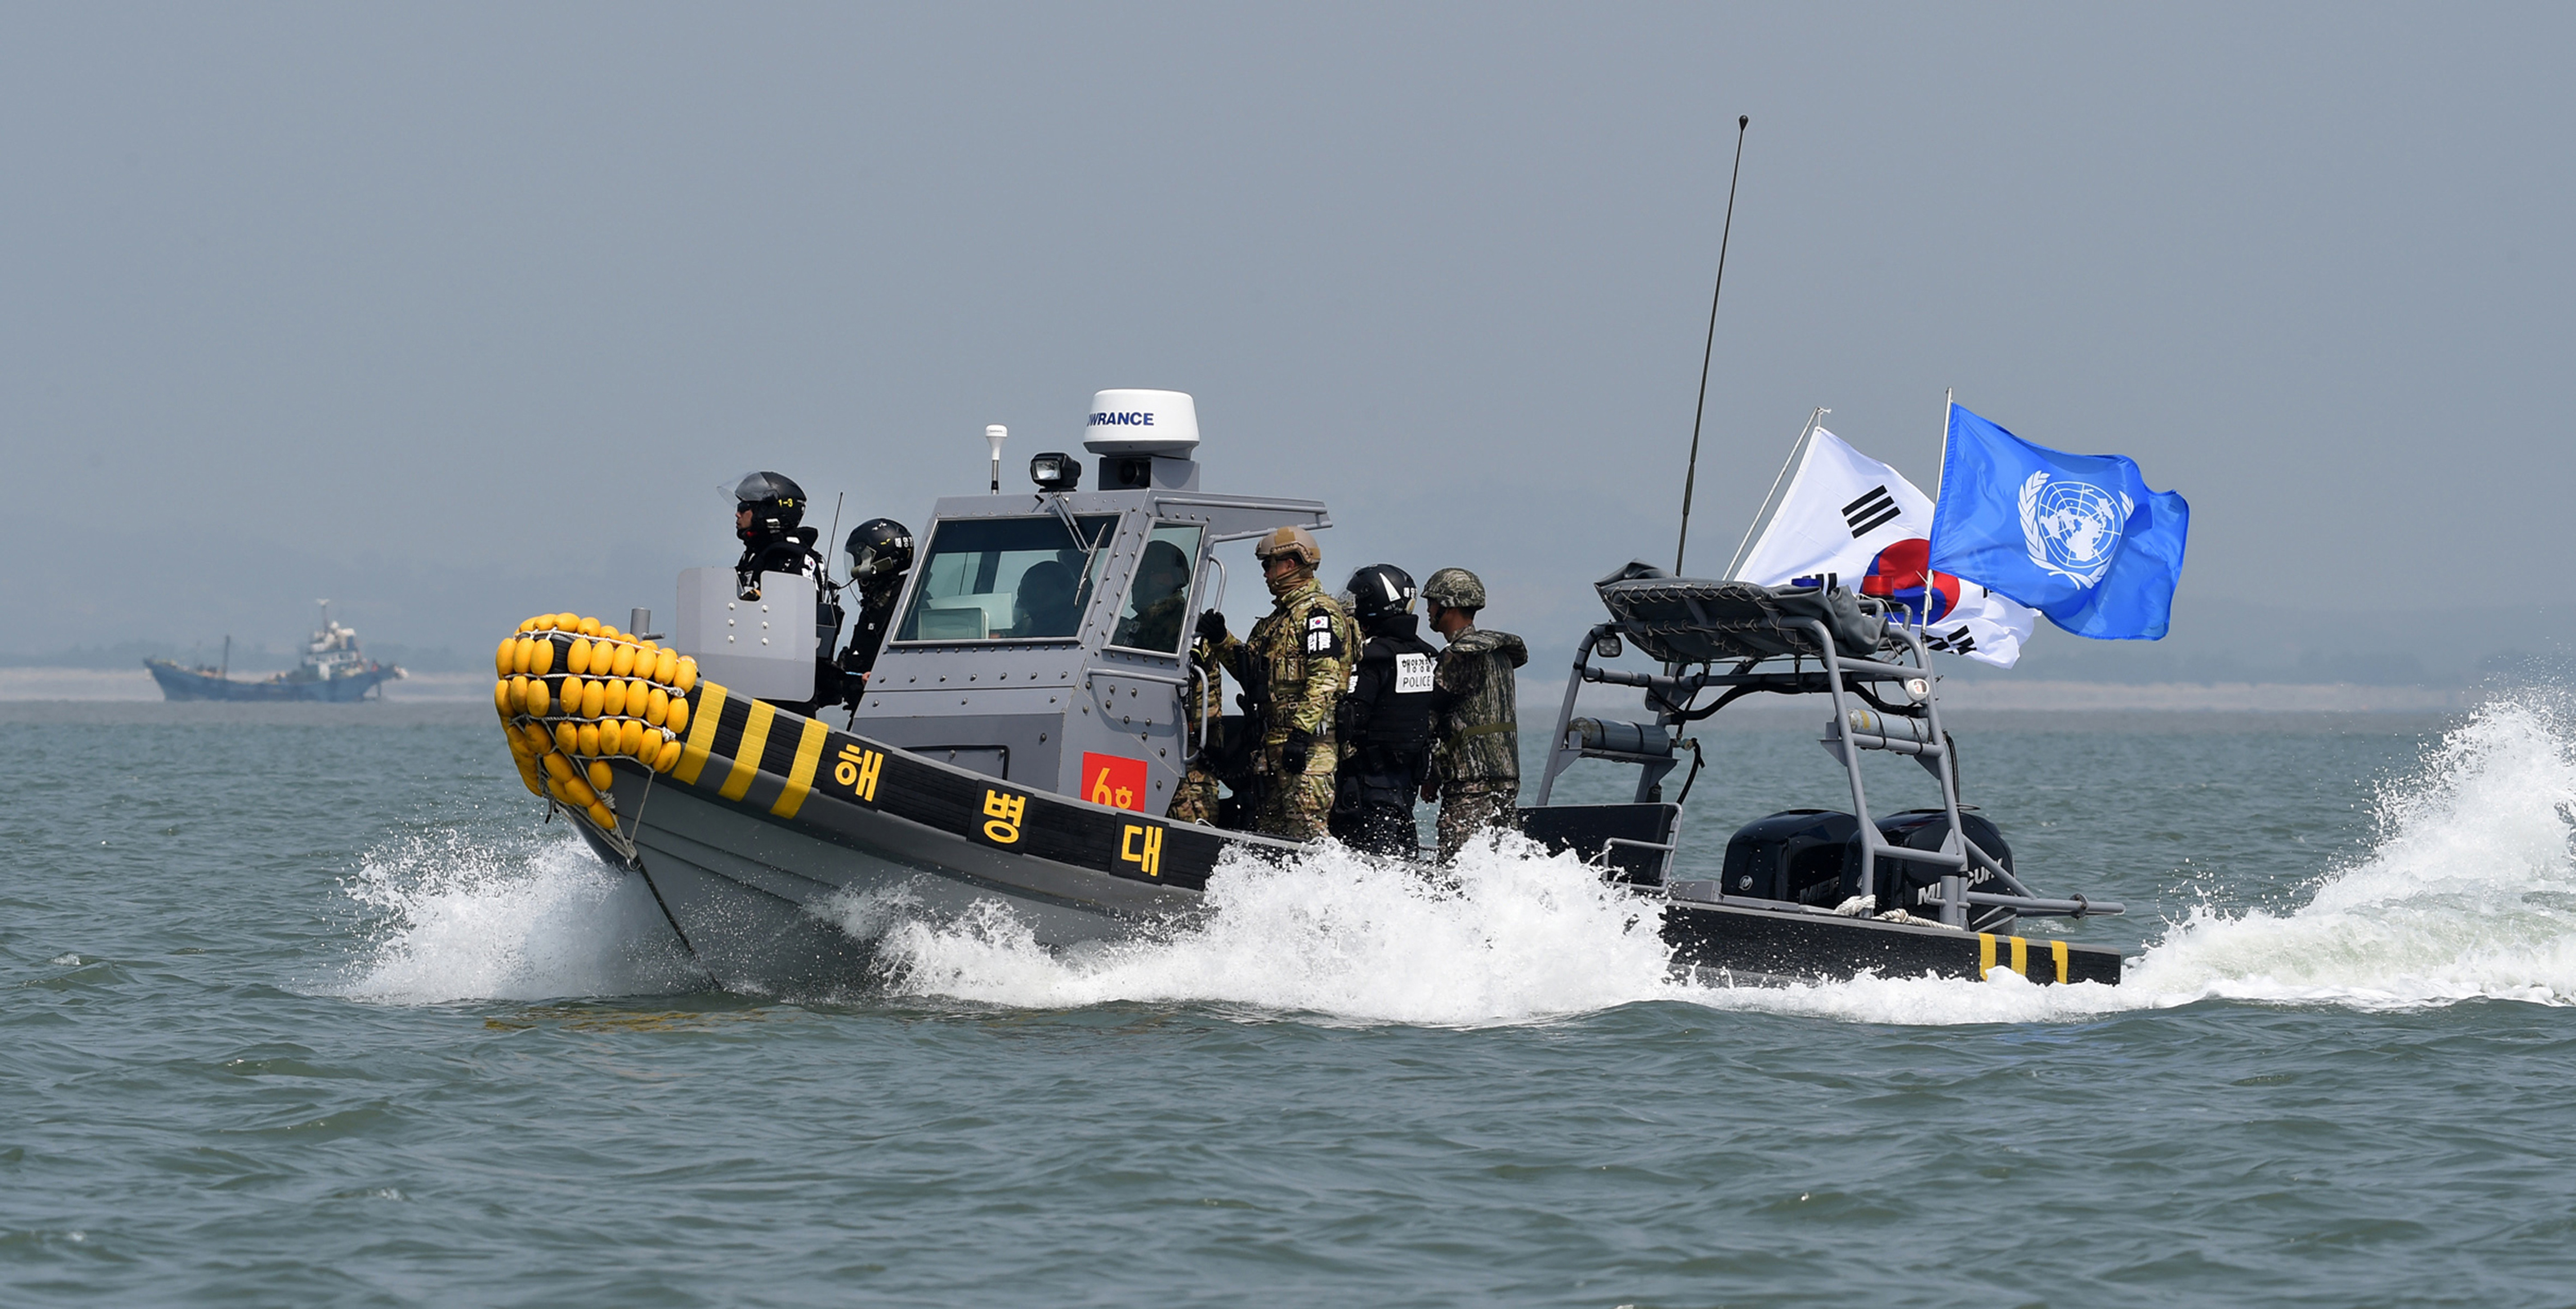 In this photo provided by the South Korean Defense Ministry, South Korean marines and navy soldiers on a boat conduct a crackdown against China's illegal fishing in neutral waters around Ganghwa island, South Korea, Friday, June 10, 2016. South Korean military vessels started an operation Friday to repel Chinese fishing boats illegally harvesting prized blue crabs from an area near Seoul's disputed sea boundary with North Korea.